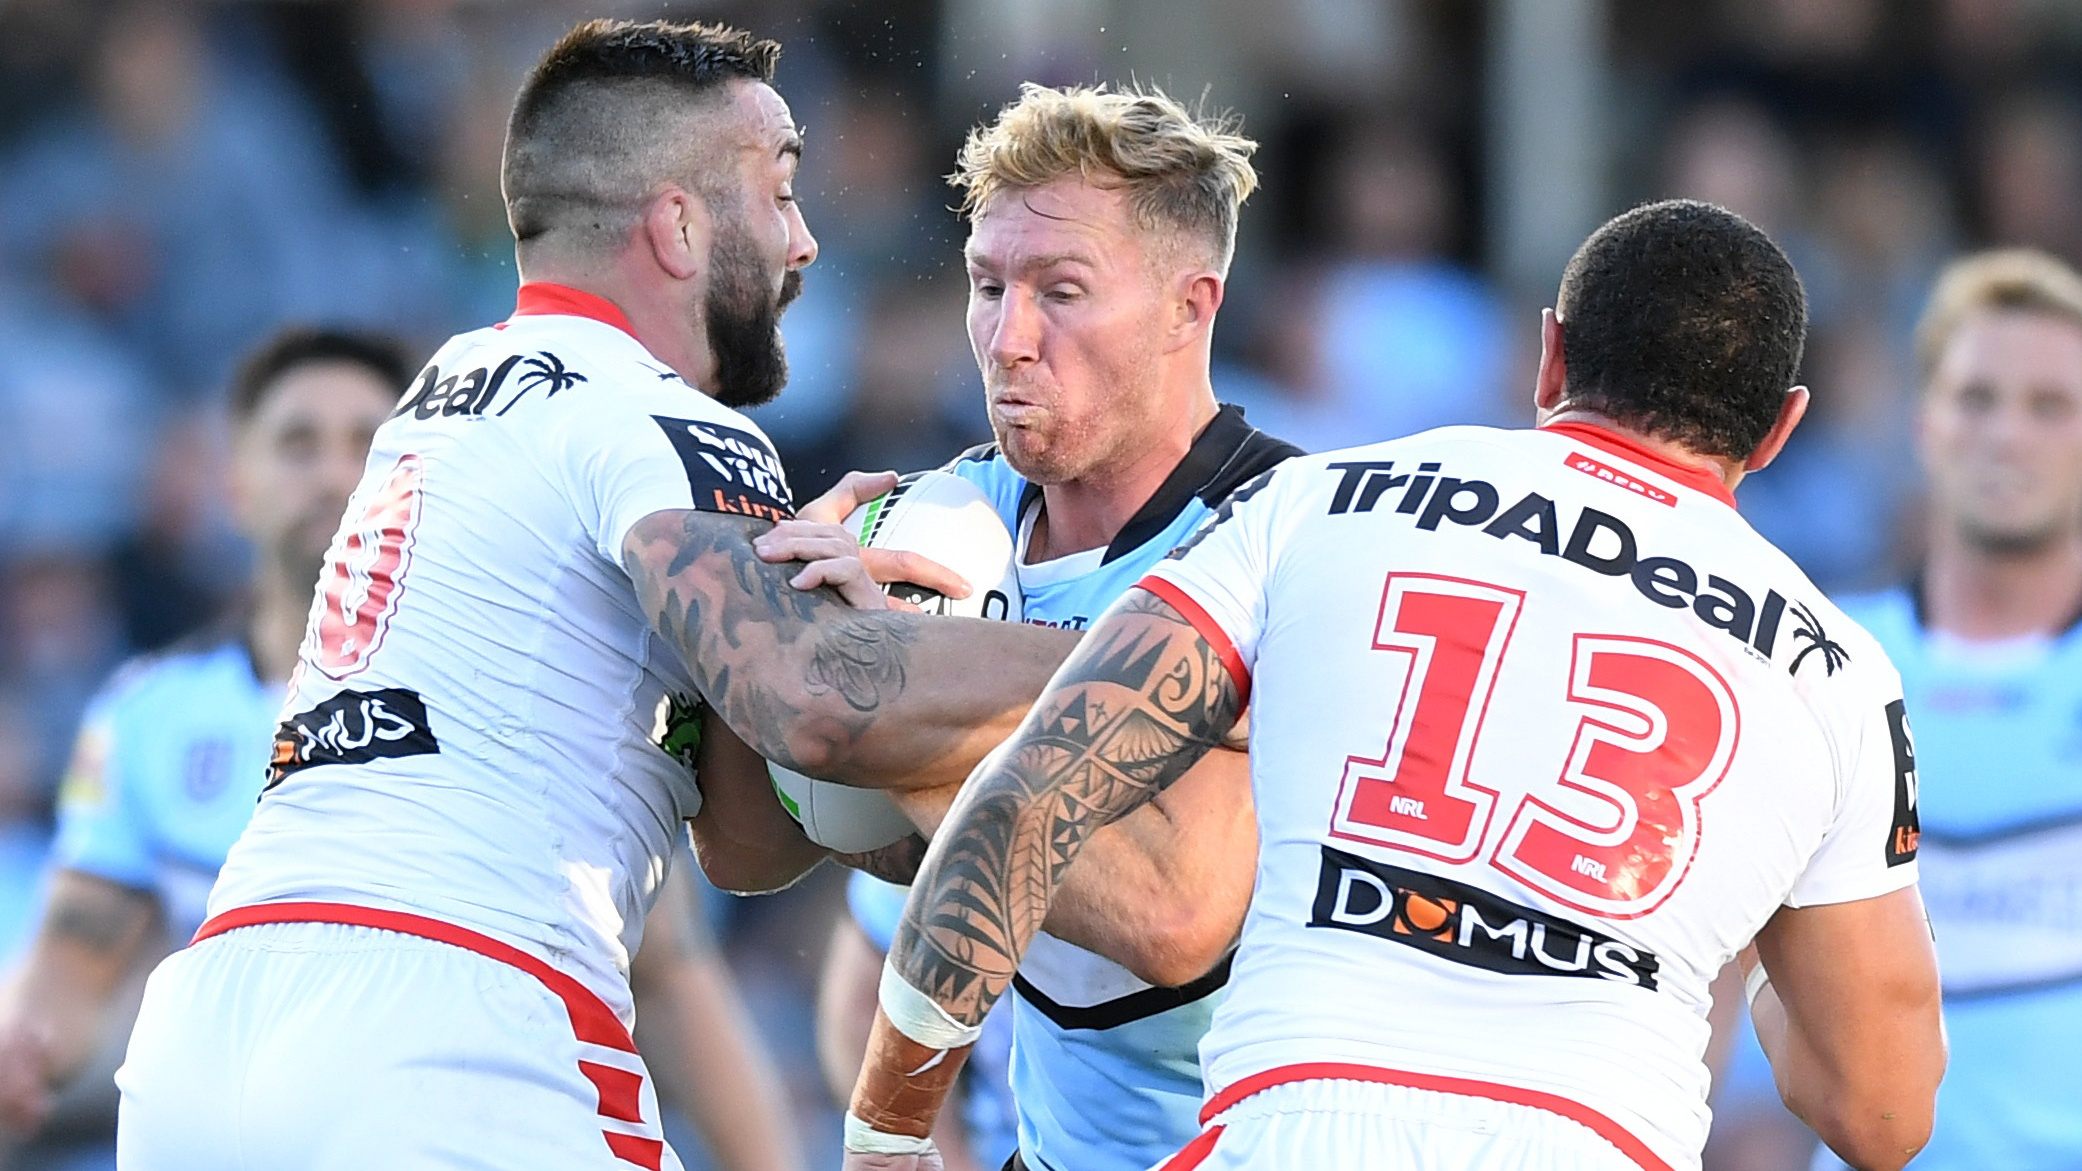 NRL Video 2019: Highlights Sharks v Dragons - Round 22